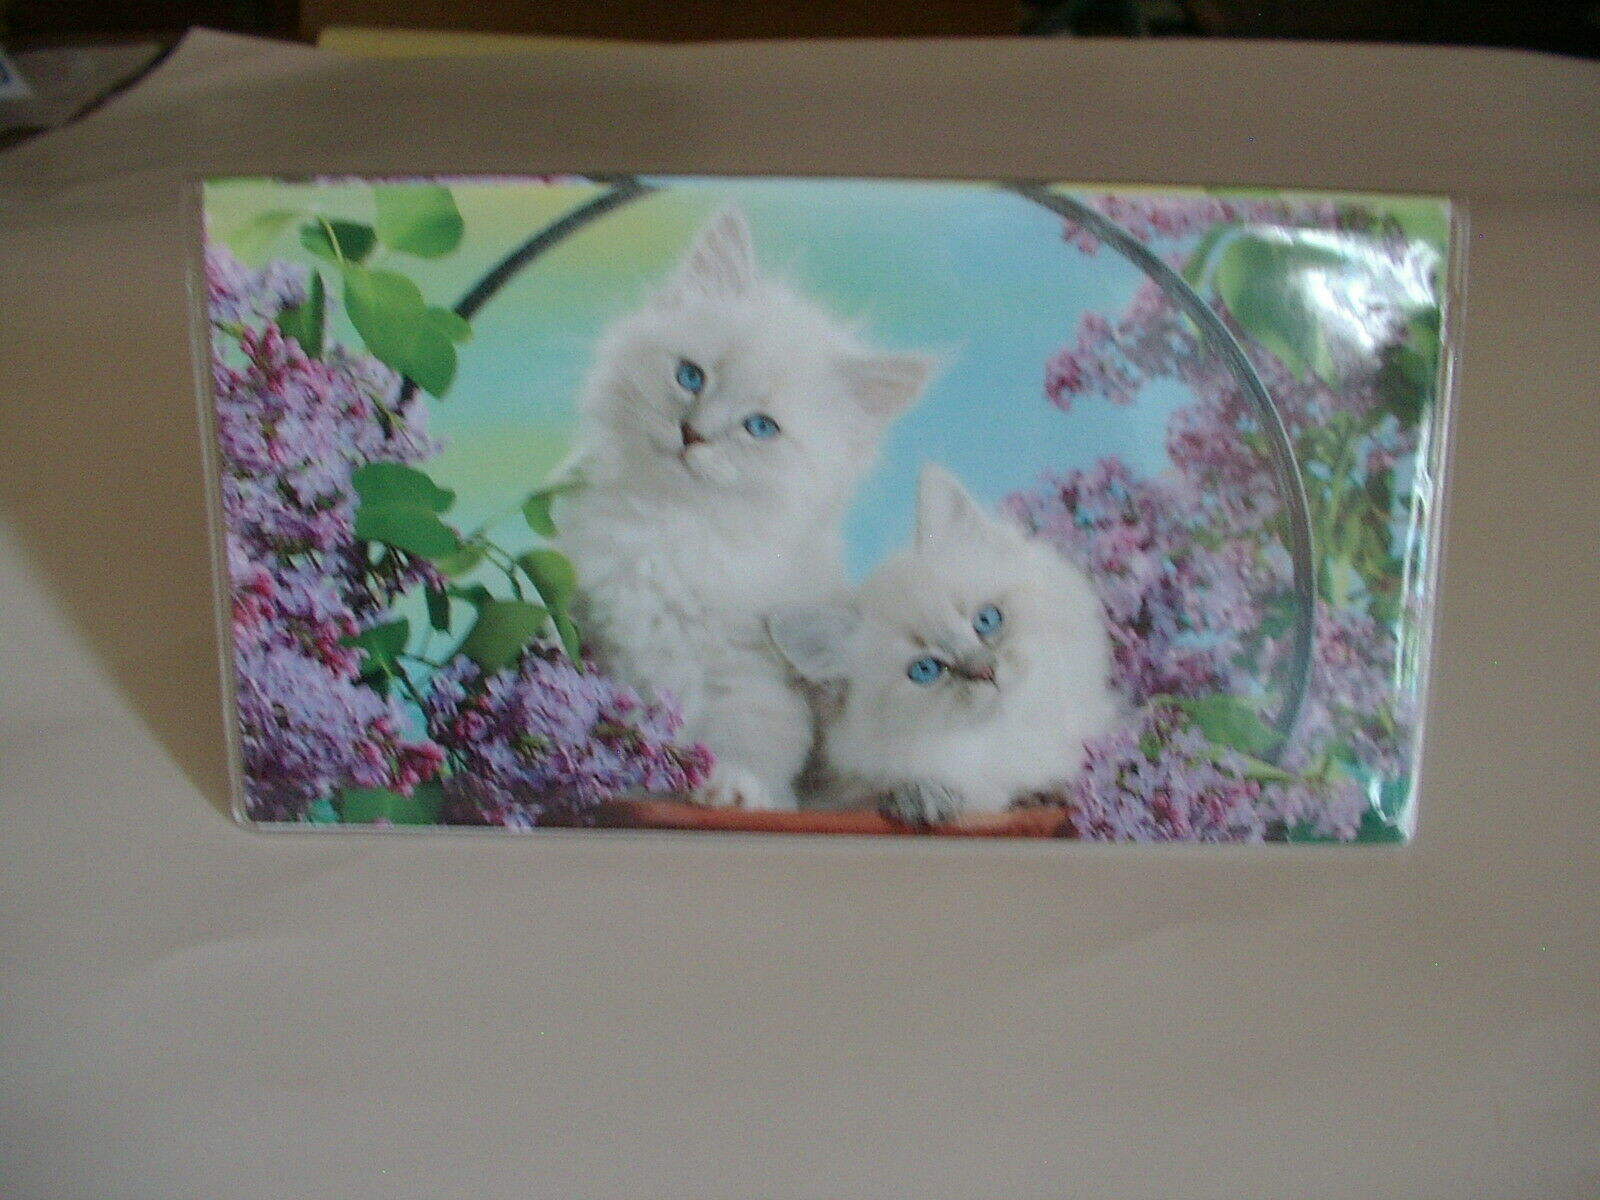 Adorable white kittens in the lilac batch Checkbook cover